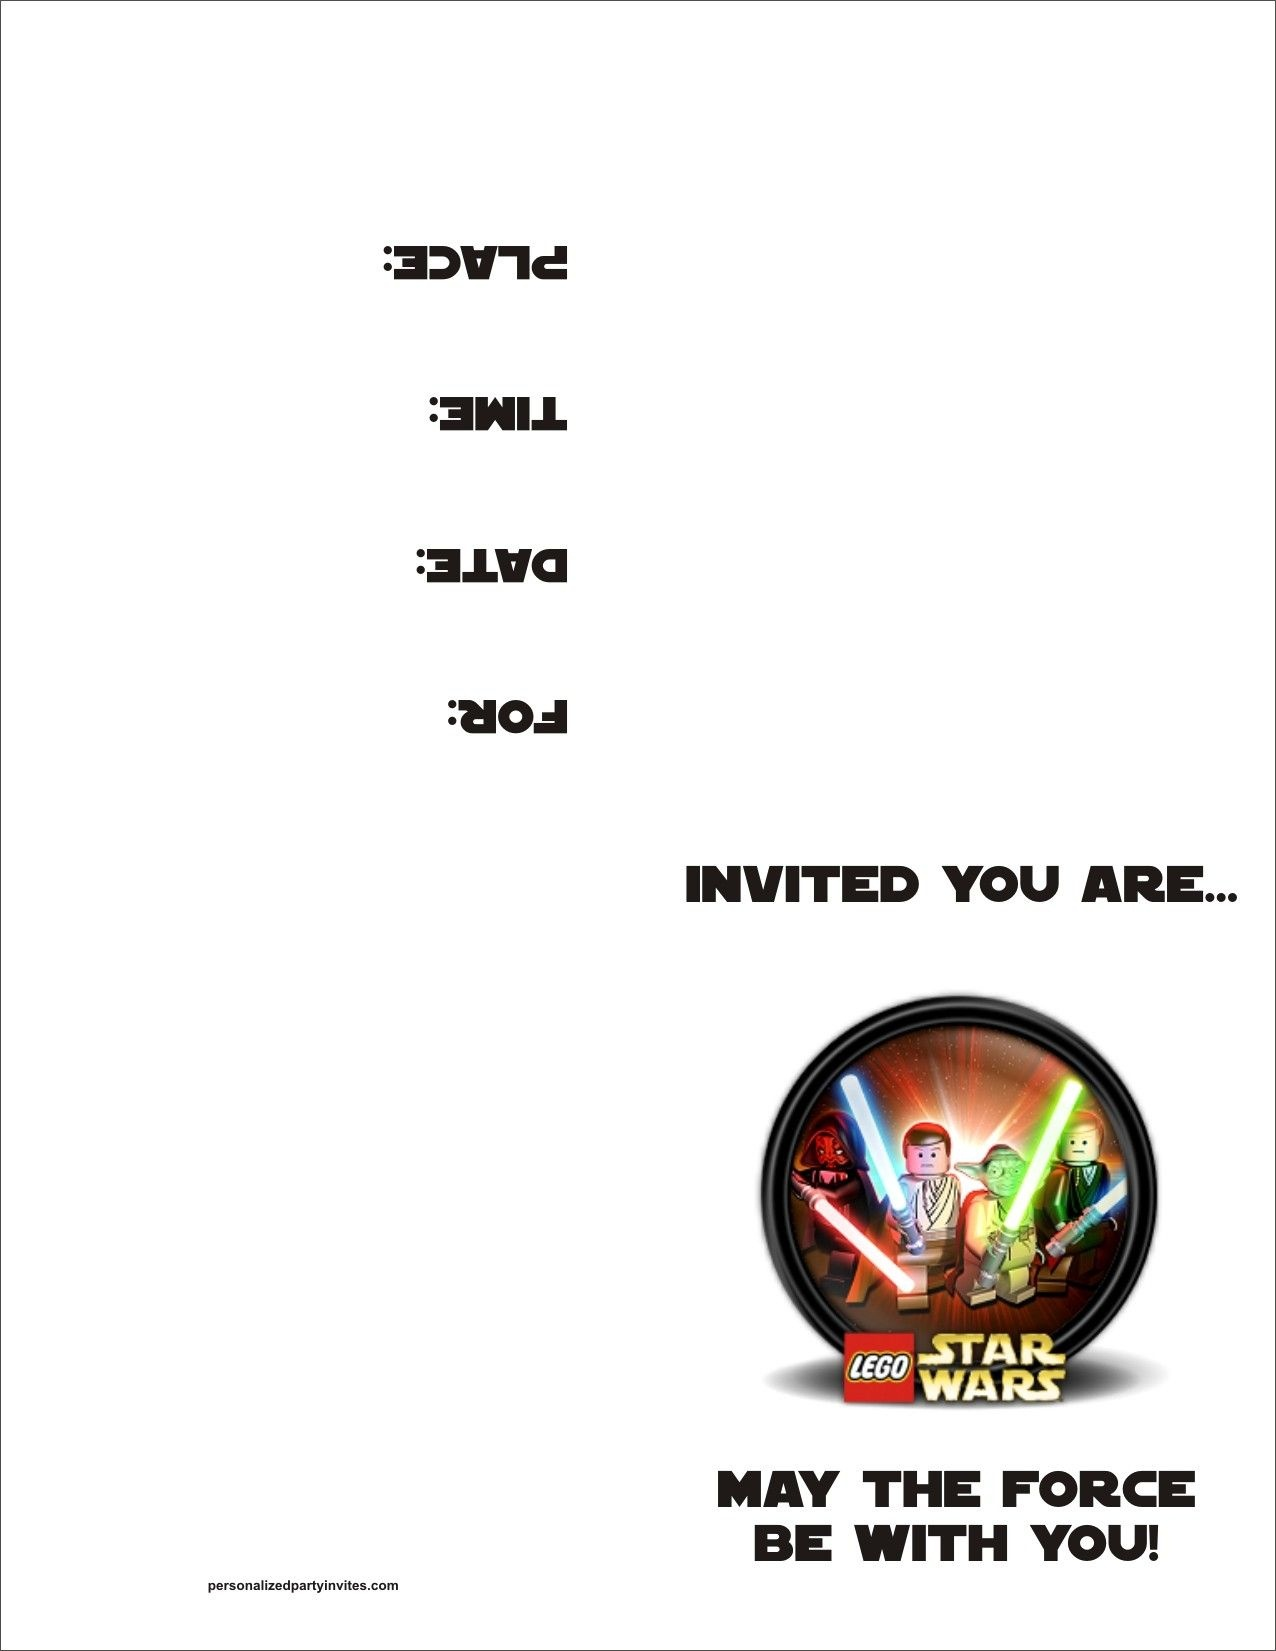 Lego+Star+Wars+Party+Invitations+Printable+Free | Costume In 2019 - Star Wars Invitations Free Printable